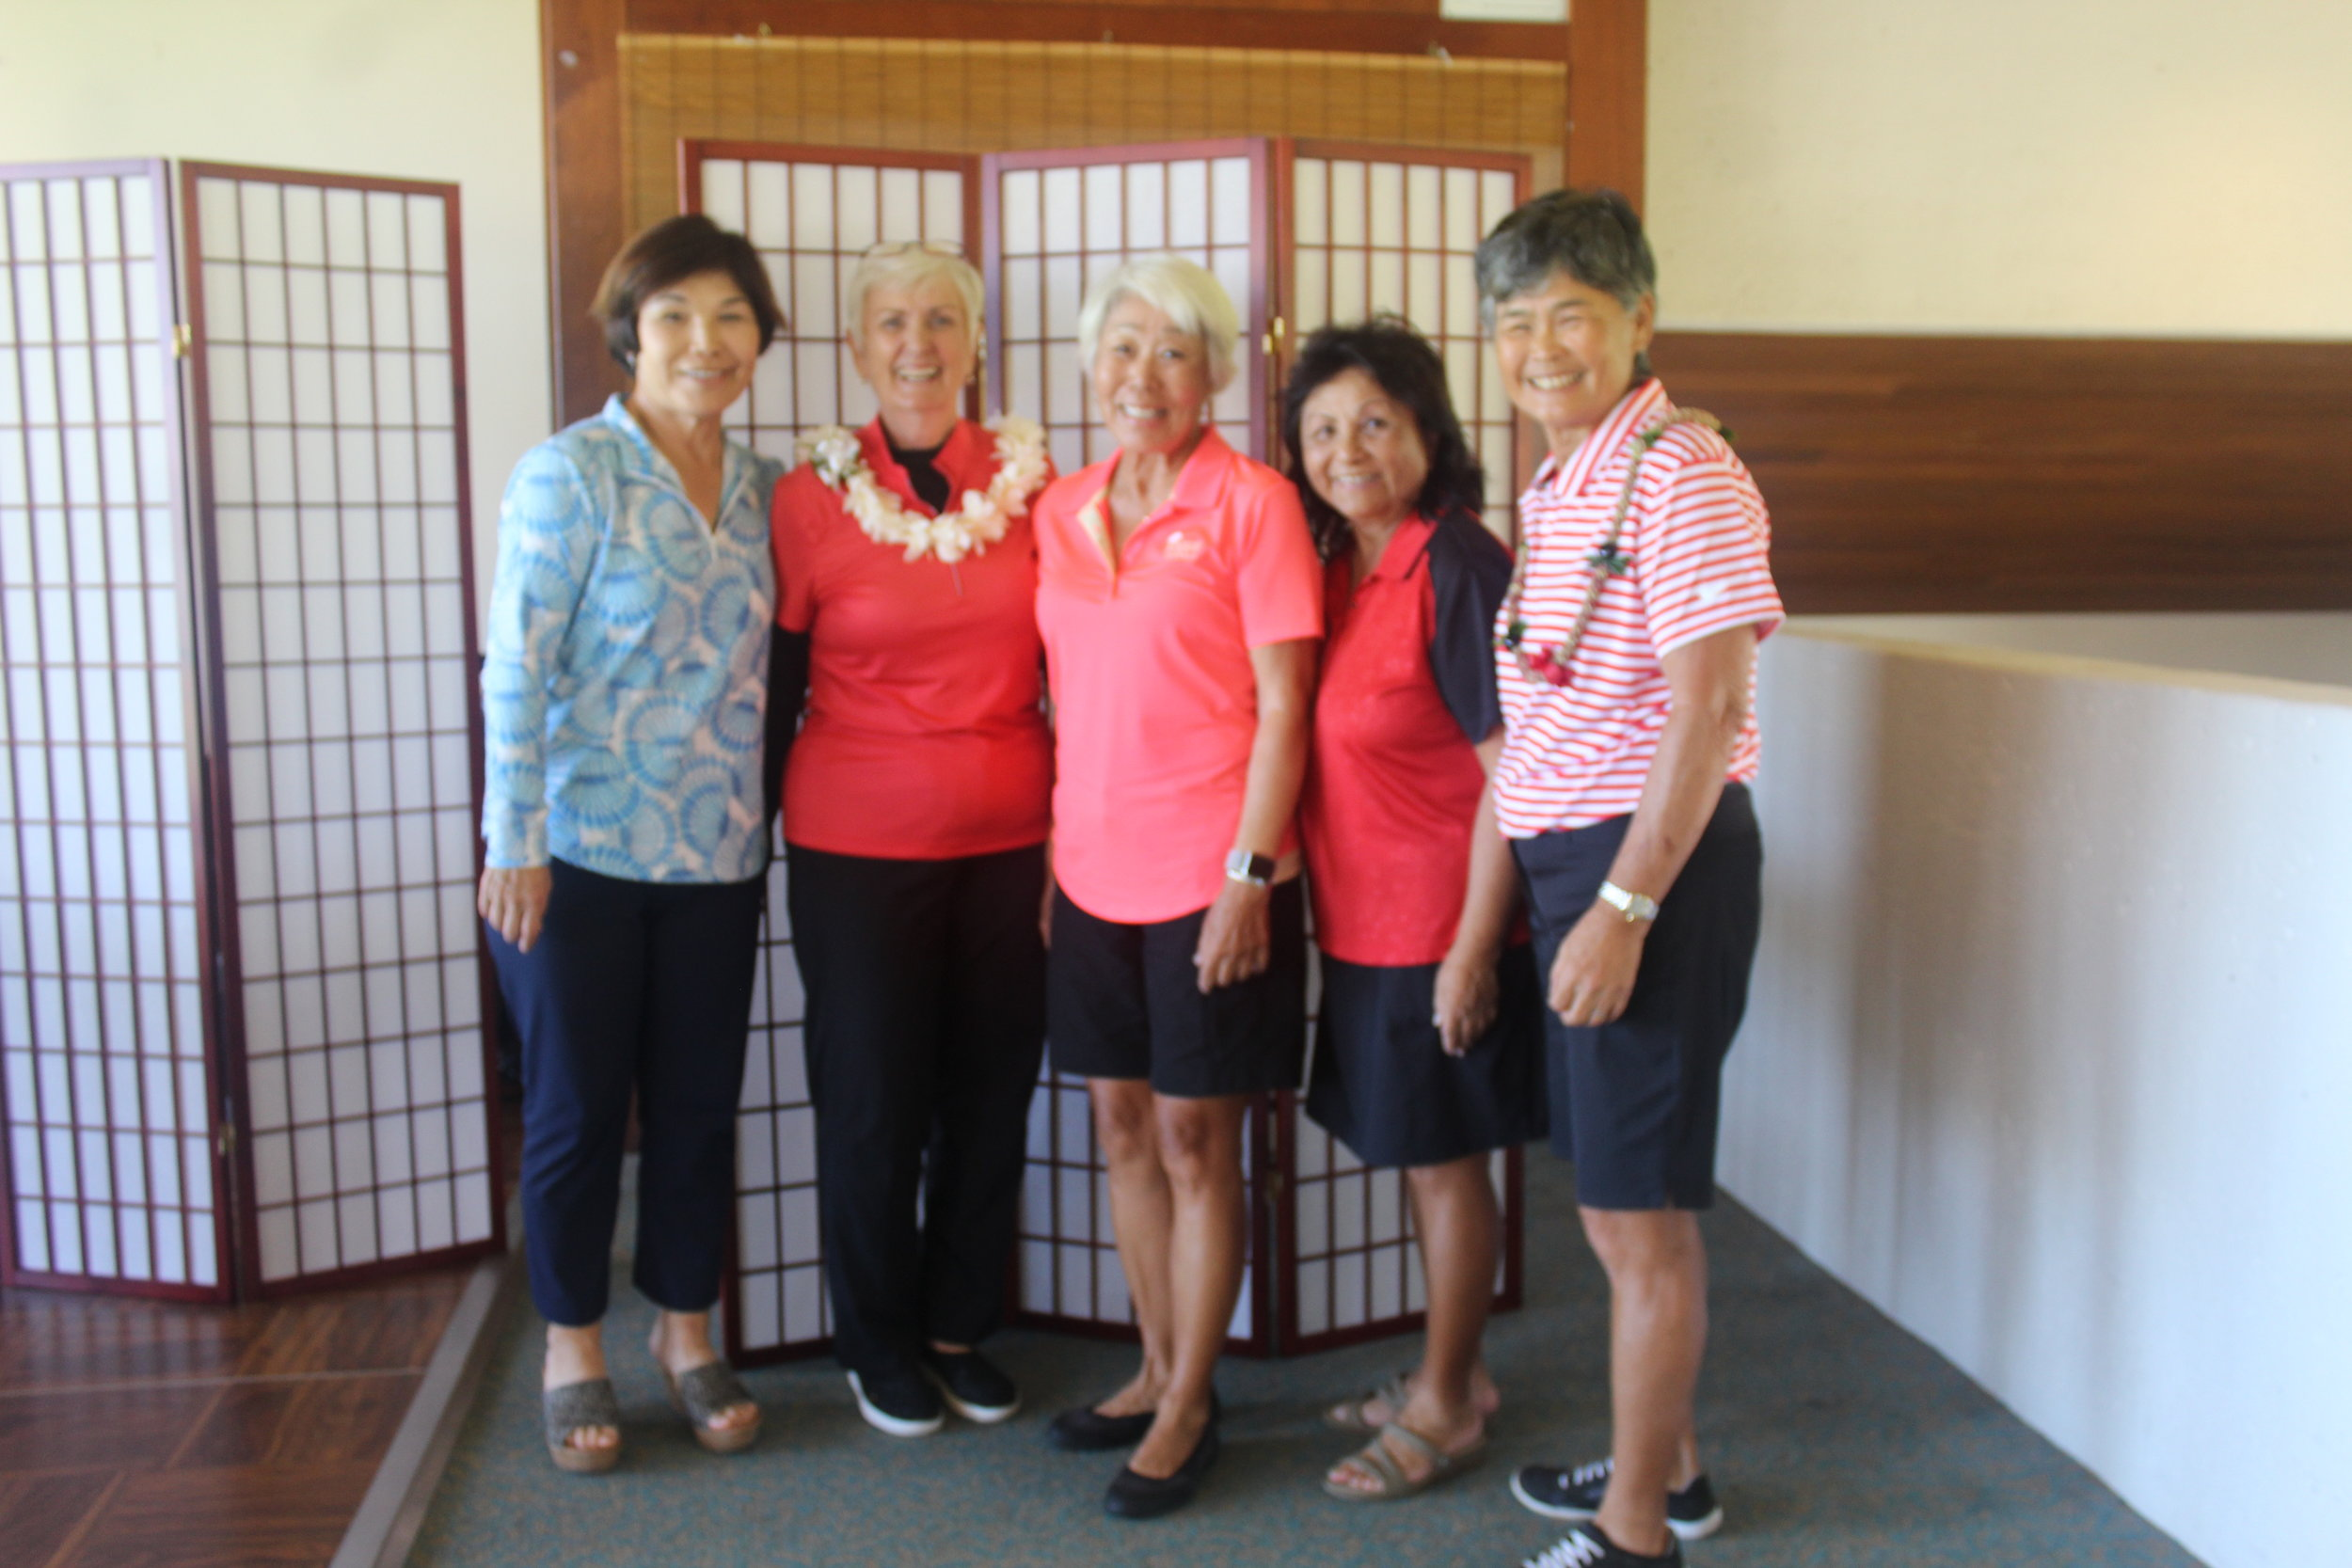 Some of our HSWGA board members:  (left to right) Gwen Omori, Barb Schroeder, Susan Church, Jeanette Takahashi, and Bev Kim. (missing: Kathy Ordway, Shera Hiam, Susan Fujiki, and Val Vares)